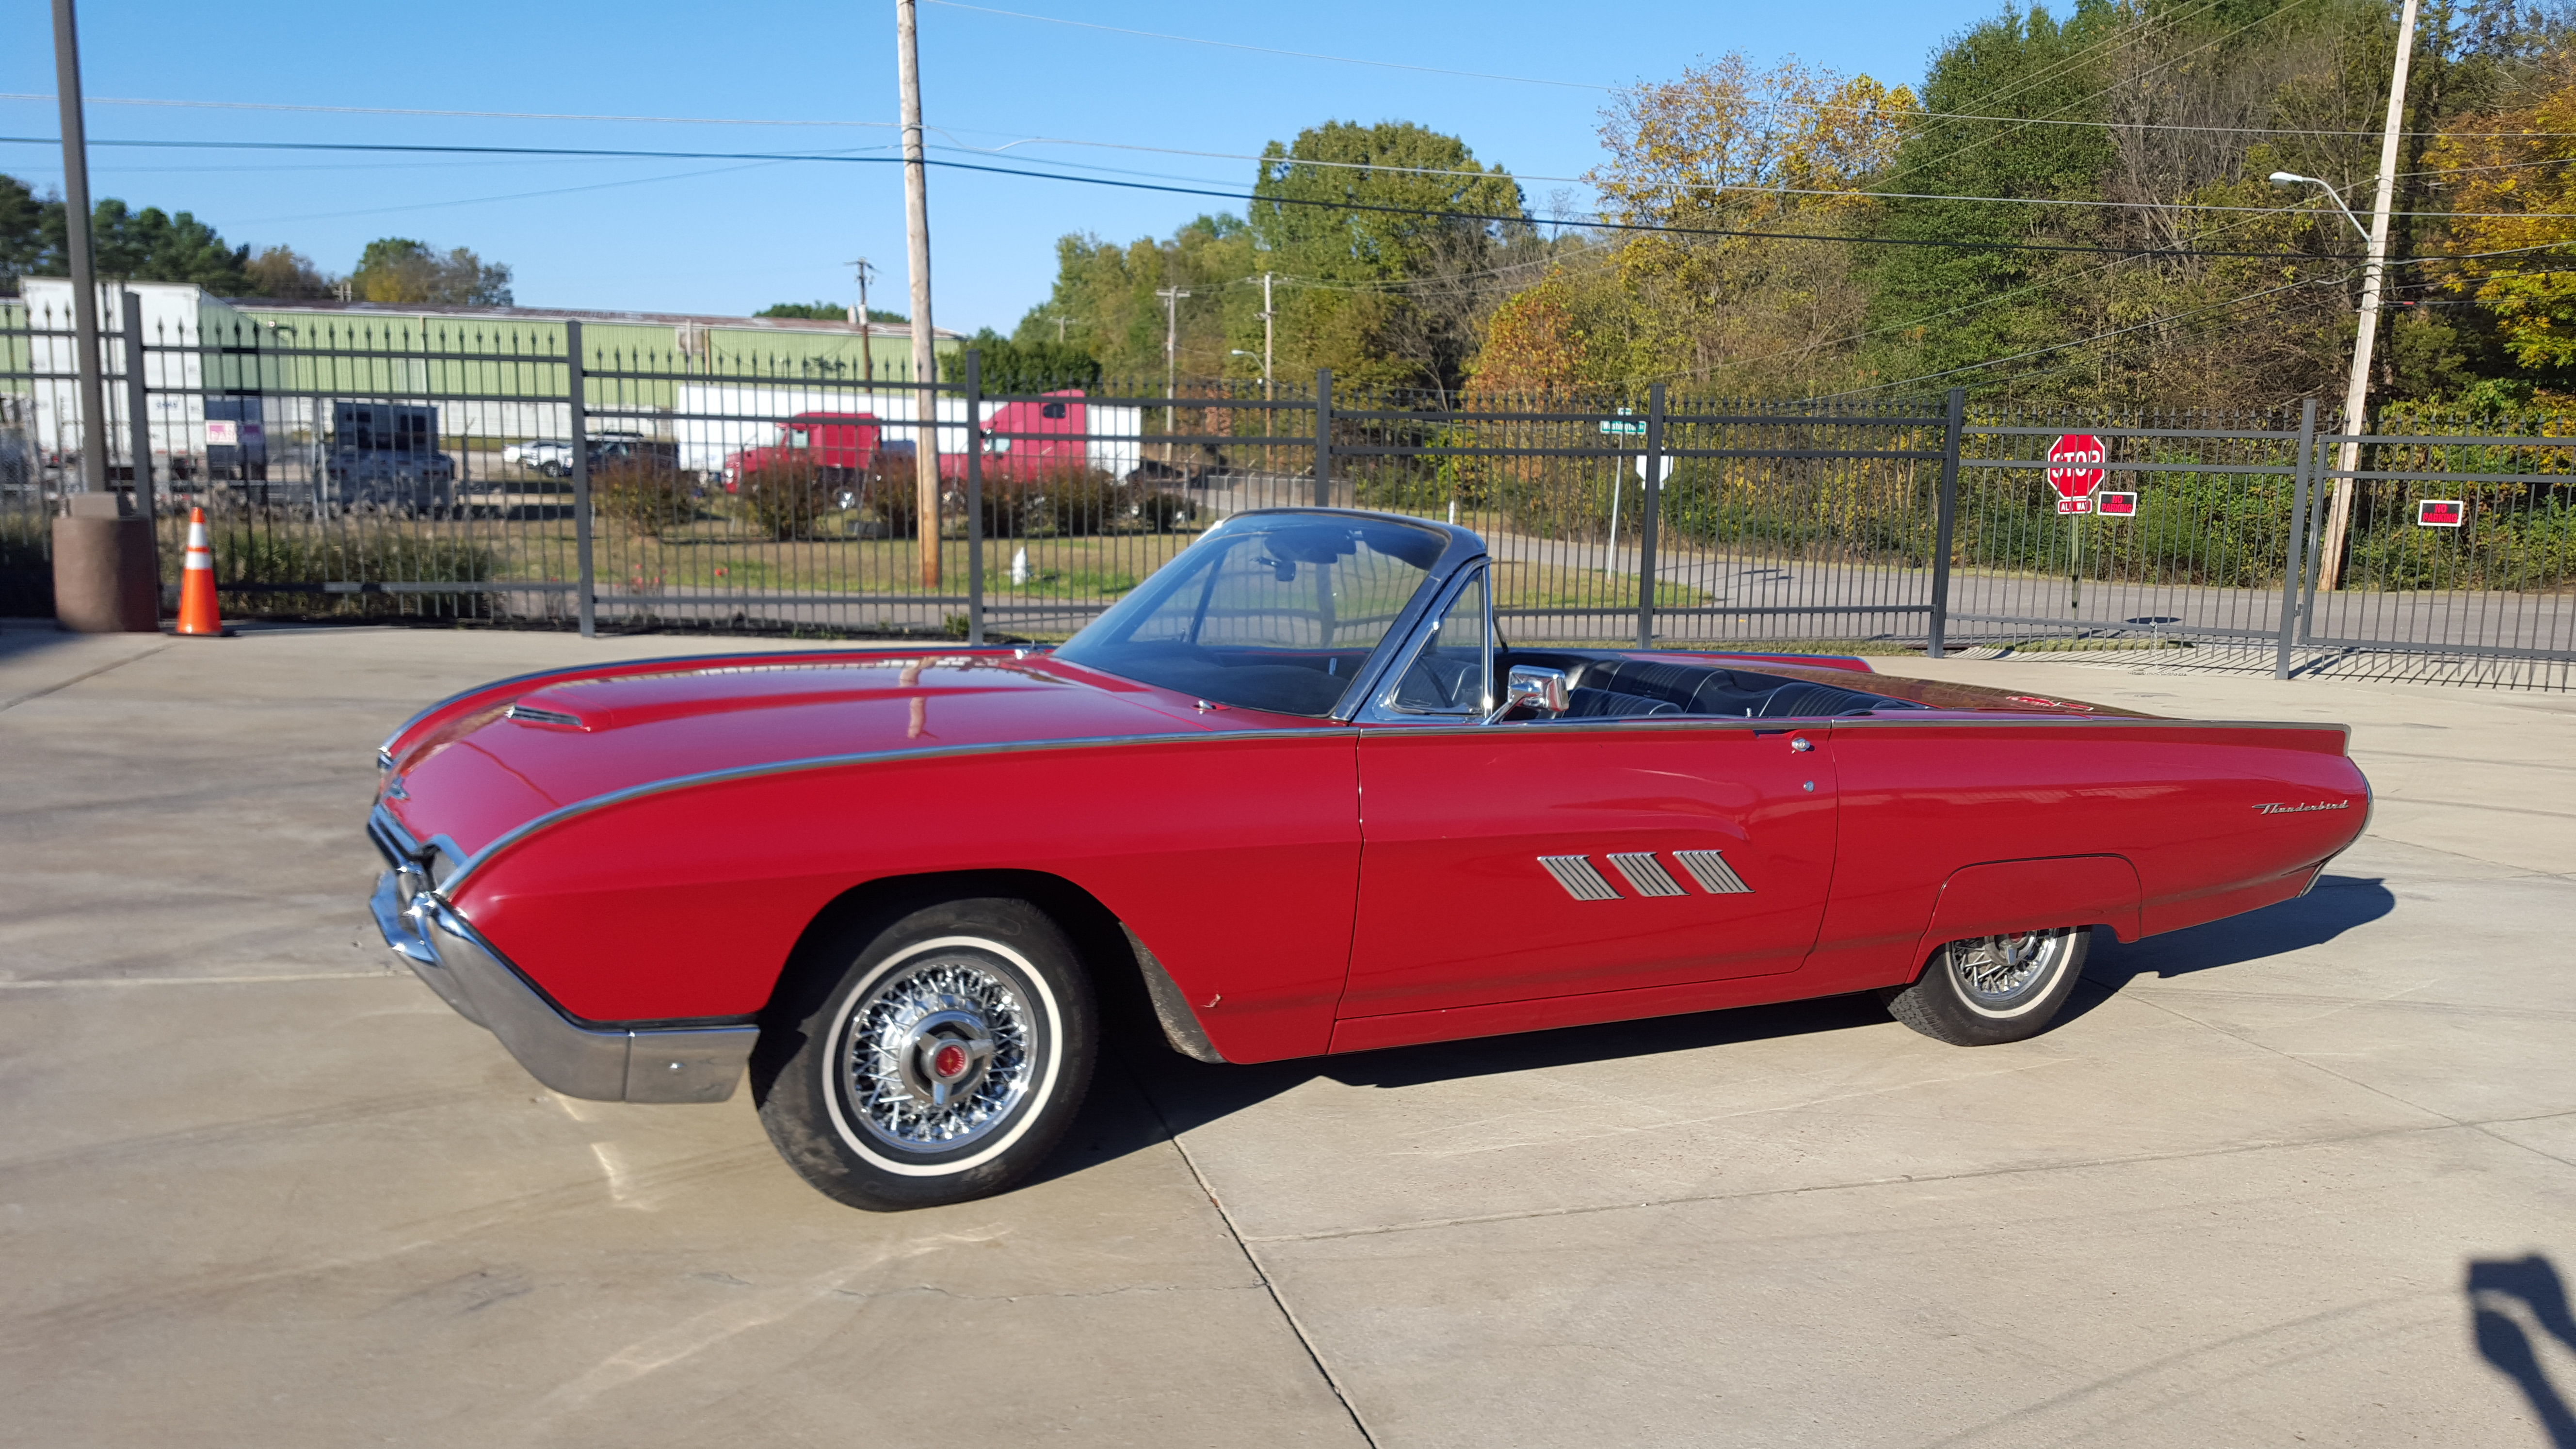 American Car Center Memphis Tn >> 1963 Ford Thunderbird | Art & Speed Classic Car Gallery in Memphis, TN